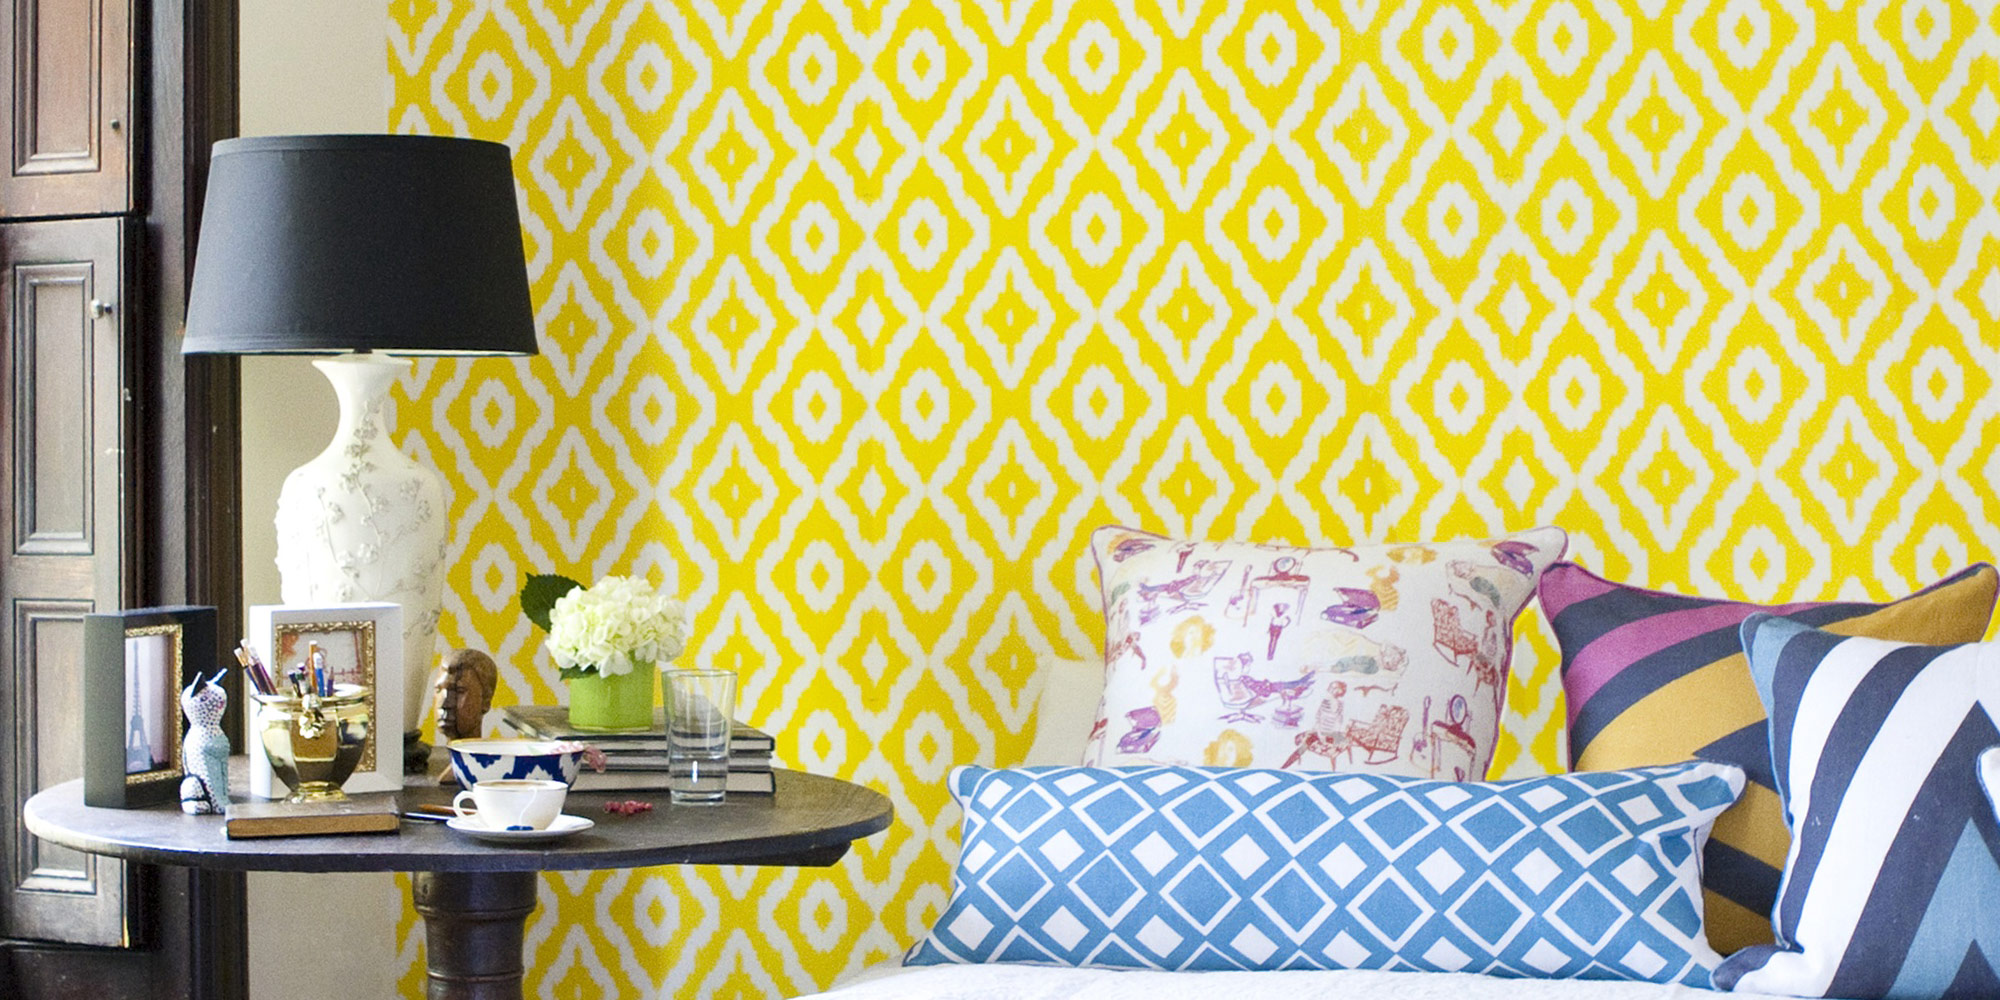 Wallpaper ideas for your home or rental | Progressive